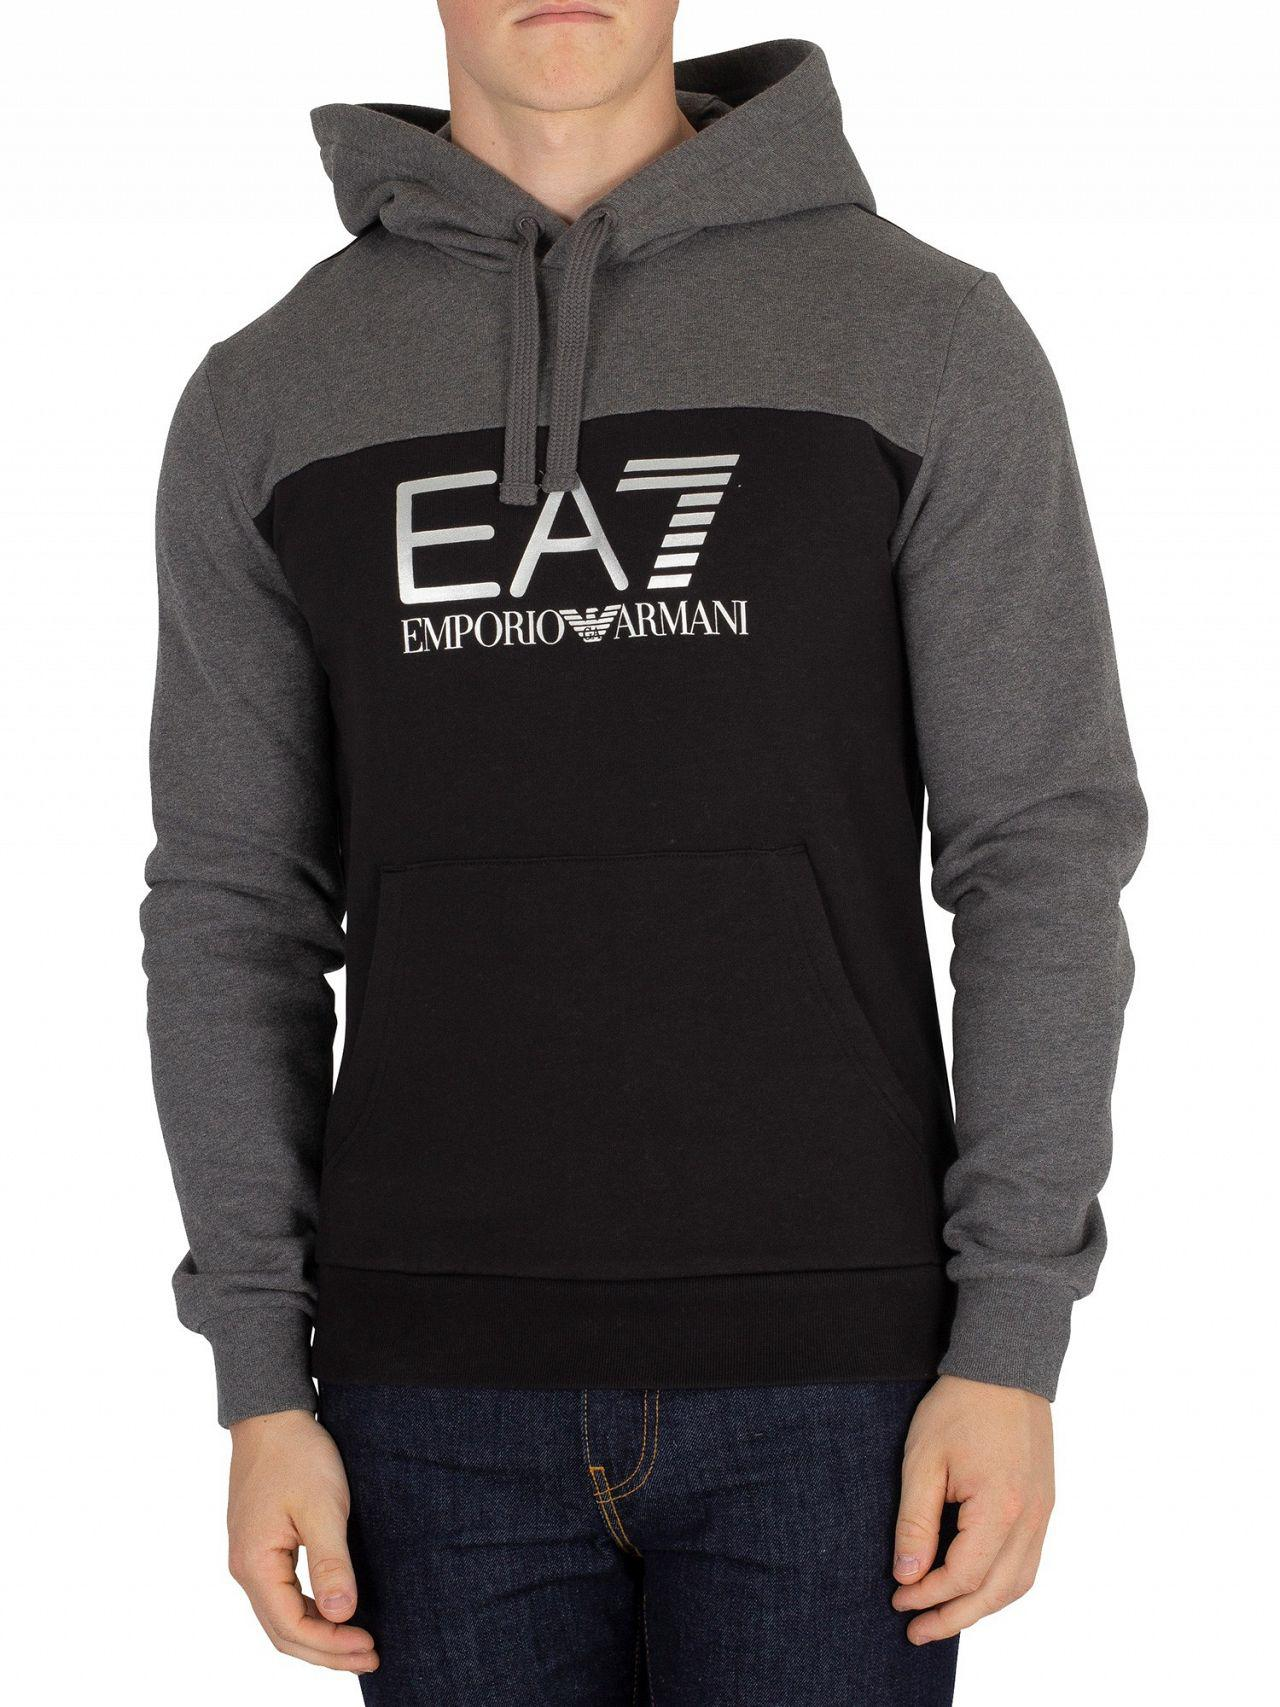 d8f4bc19f19 Lyst - Ea7 Black grey Graphic Pullover Hoodie in Black for Men